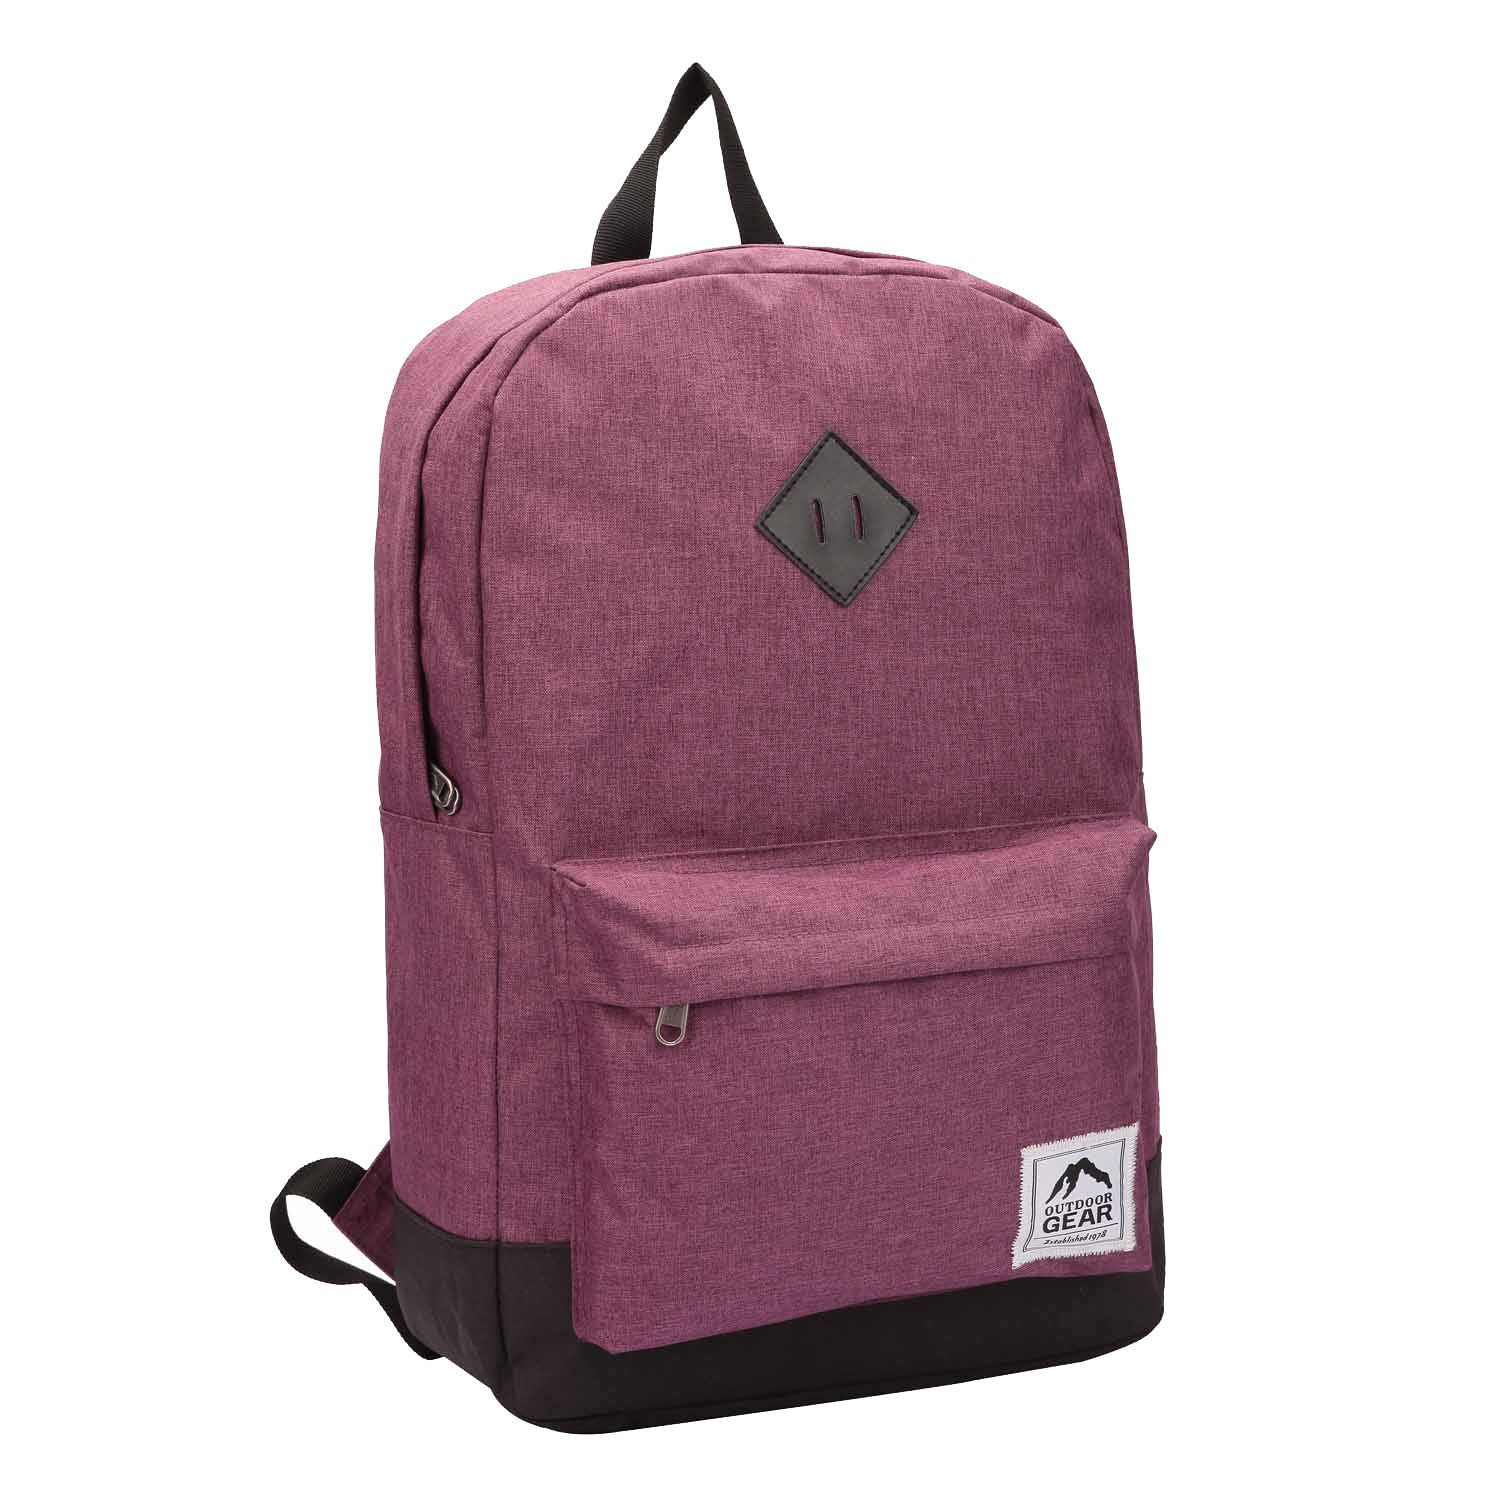 Classic Backpack DayPack Backpacks for School Rucksacks RL813PuP